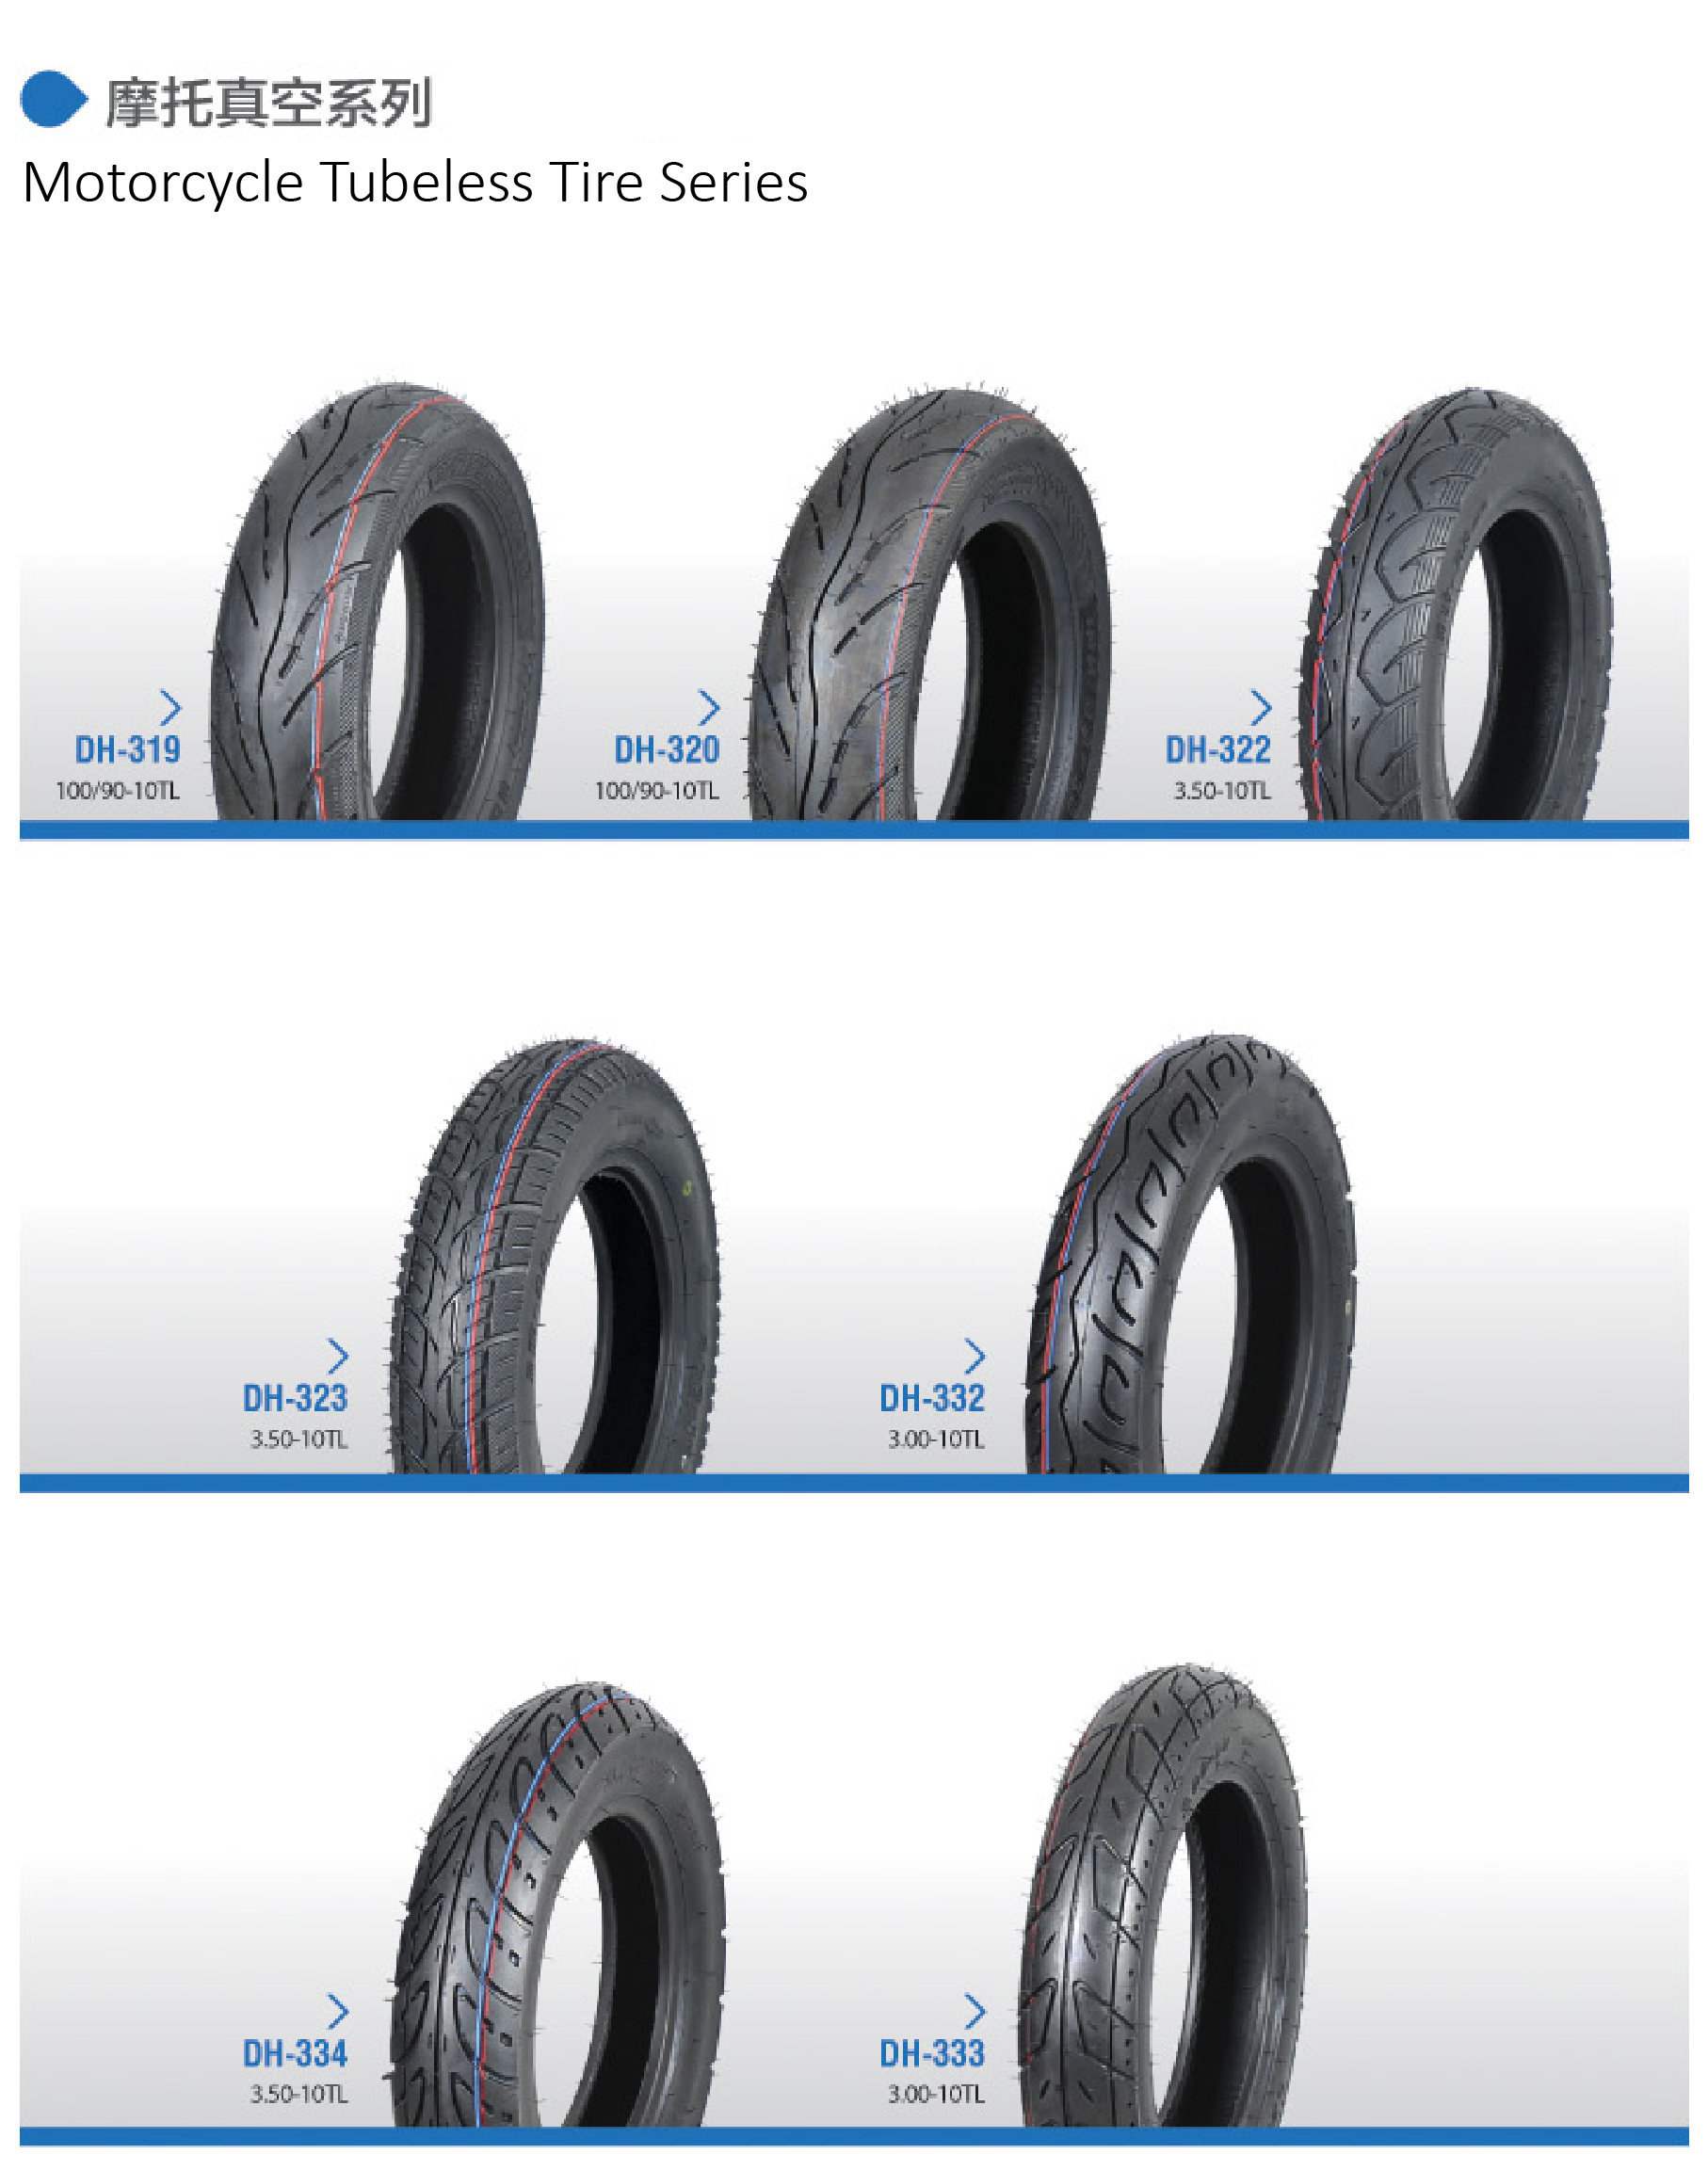 Motorcycle Tubeless Tires